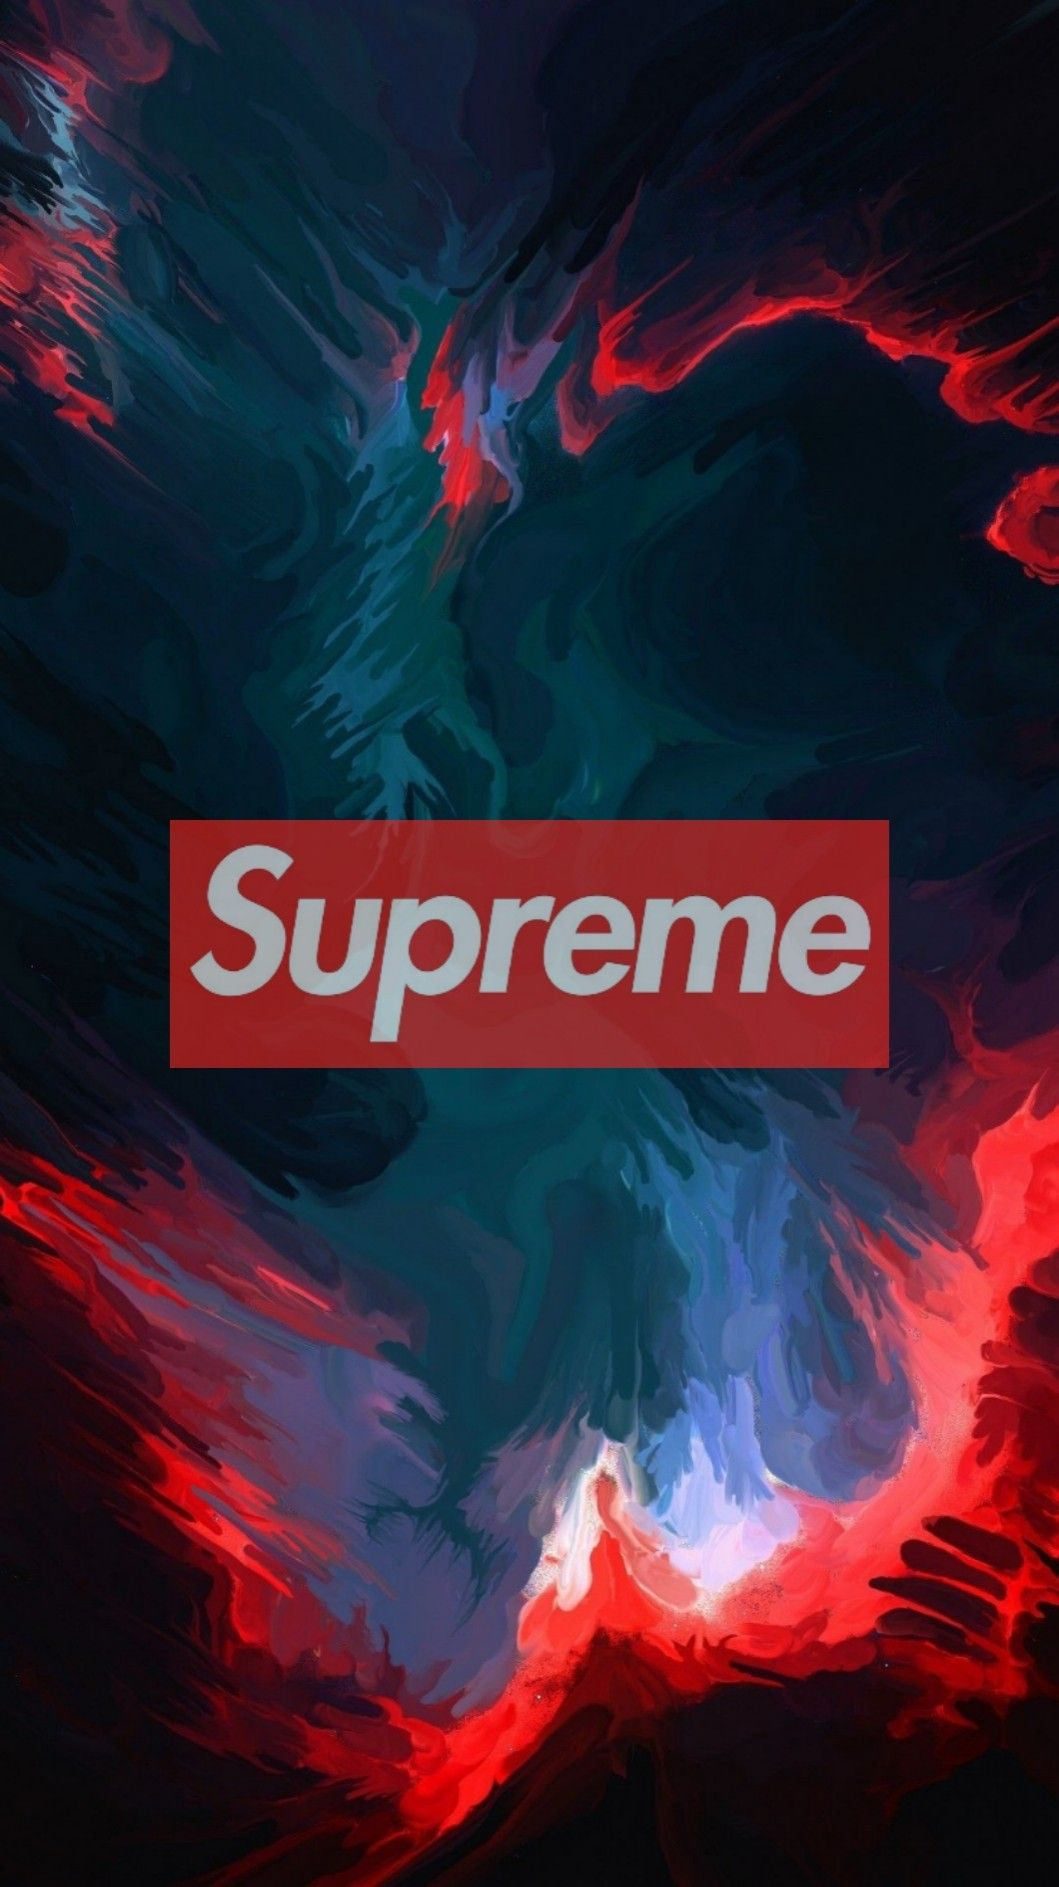 Pin By Princealmonor On Unique Wallpaper Supreme Wallpaper Supreme Iphone Wallpaper Hypebeast Iphone Wallpaper